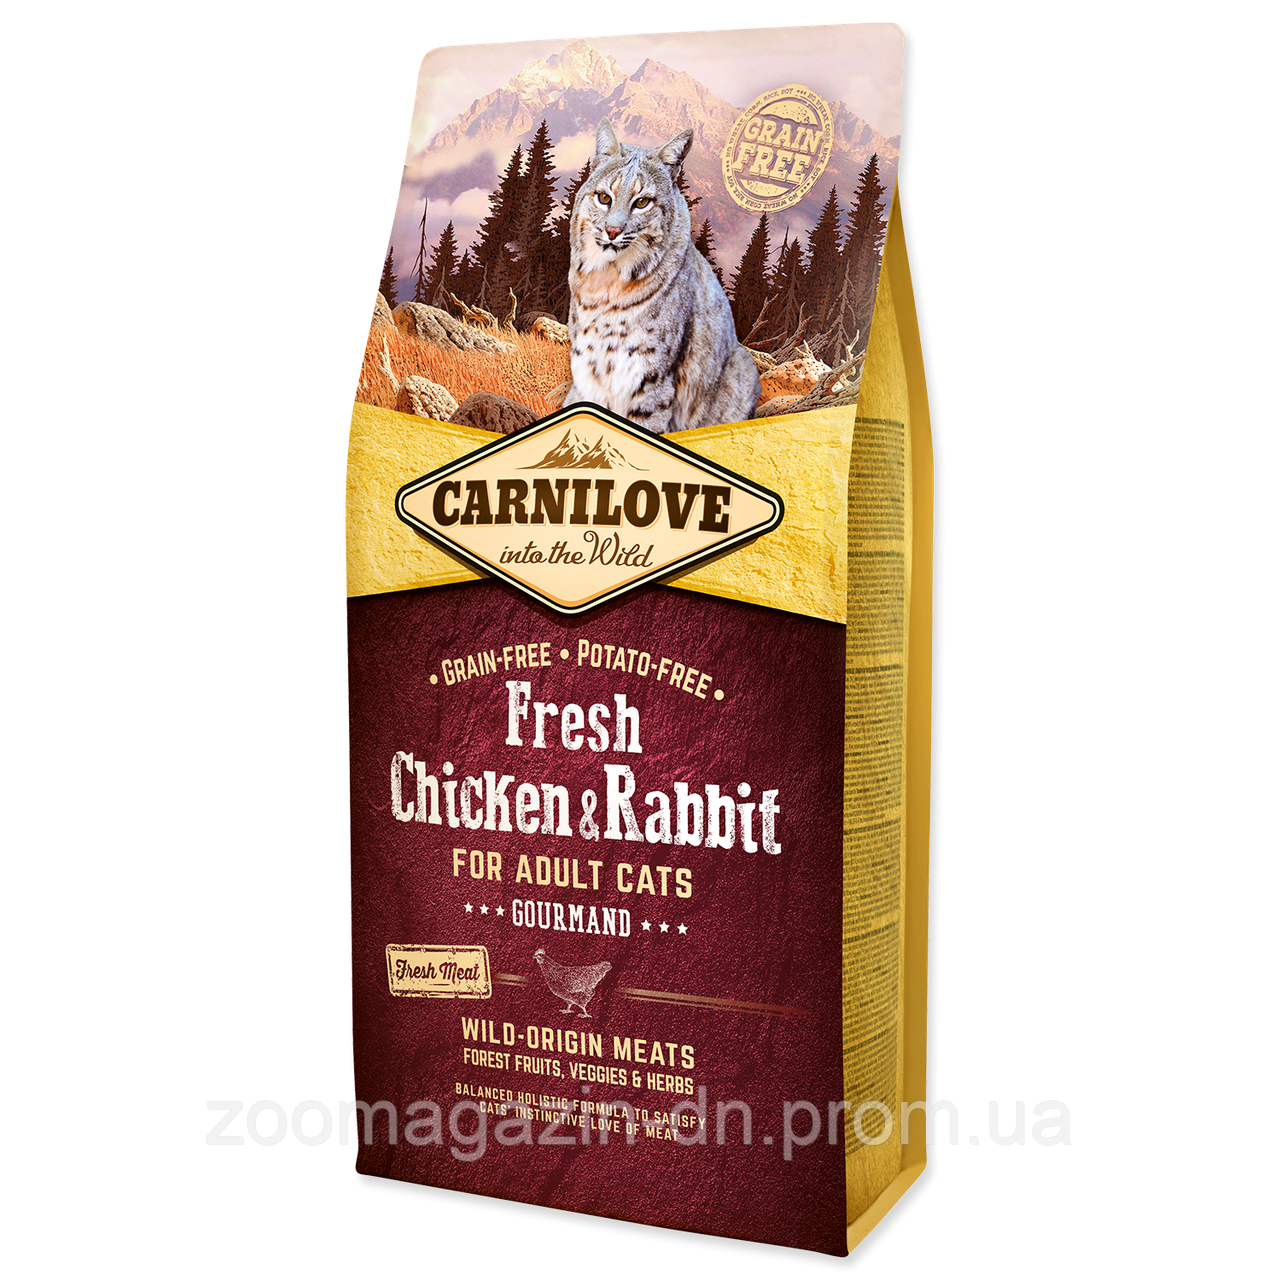 Carnilove Fresh Chicken & Rabbit for Adult cats 2 kg курица,кролик для котов